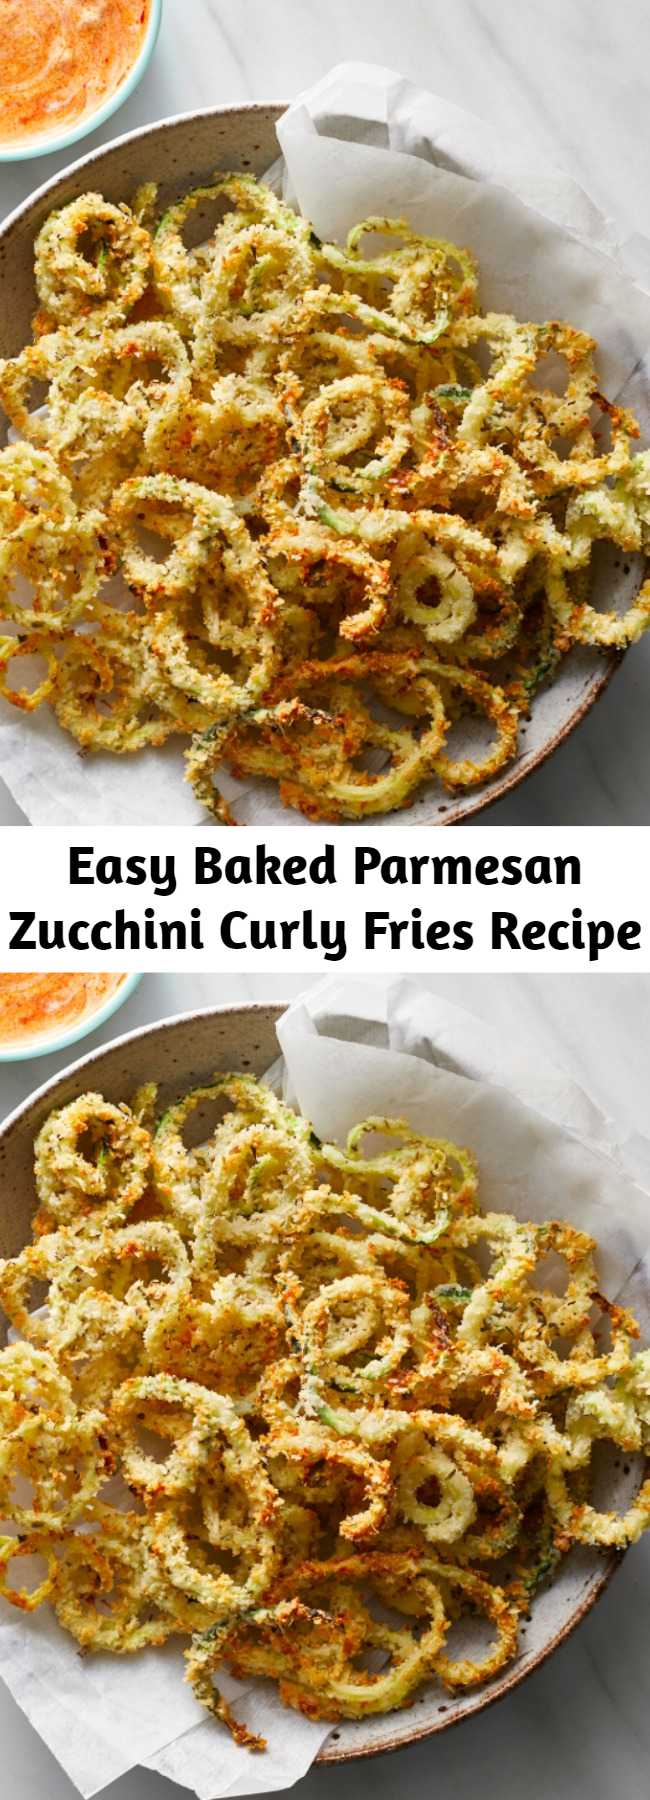 Easy Baked Parmesan Zucchini Curly Fries Recipe - This healthy recipe combines two bar food favorites--fried zucchini and curly fries--into one tempting package. Serve these baked zucchini fries with a simple dipping sauce made with ranch dressing and marinara sauce for a crowd-pleasing appetizer or a side dish for burgers, chicken or pizza. No matter what you serve them with, they're a fun way to eat more vegetables for kids and adults alike. #comfortfood #healthycomfortfood #recipe #healthy